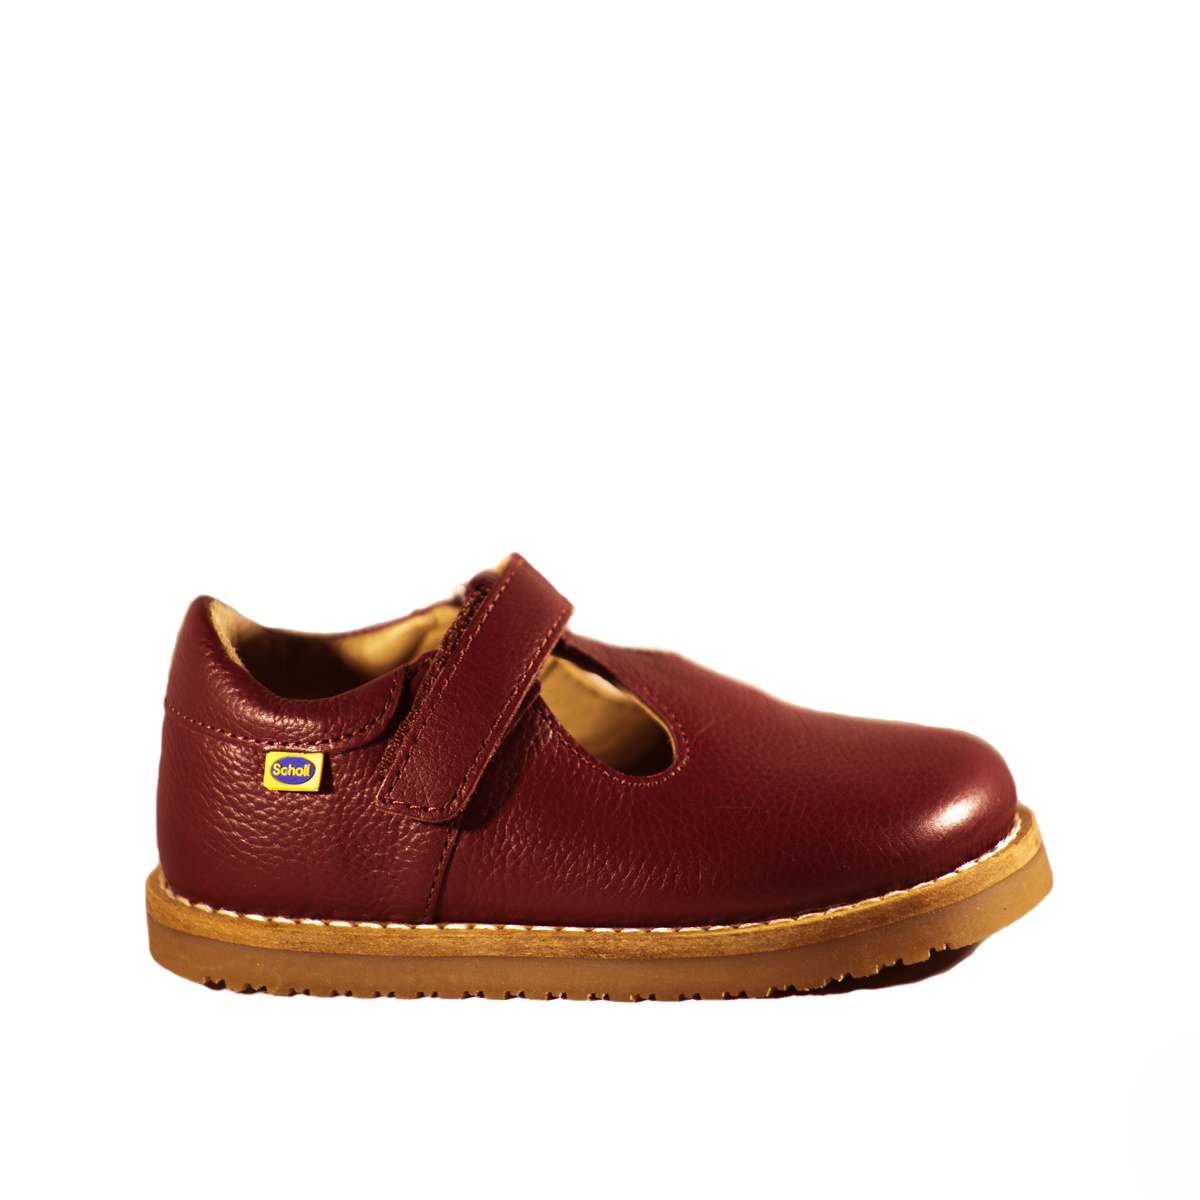 Scholl Blue Burgundy Infant